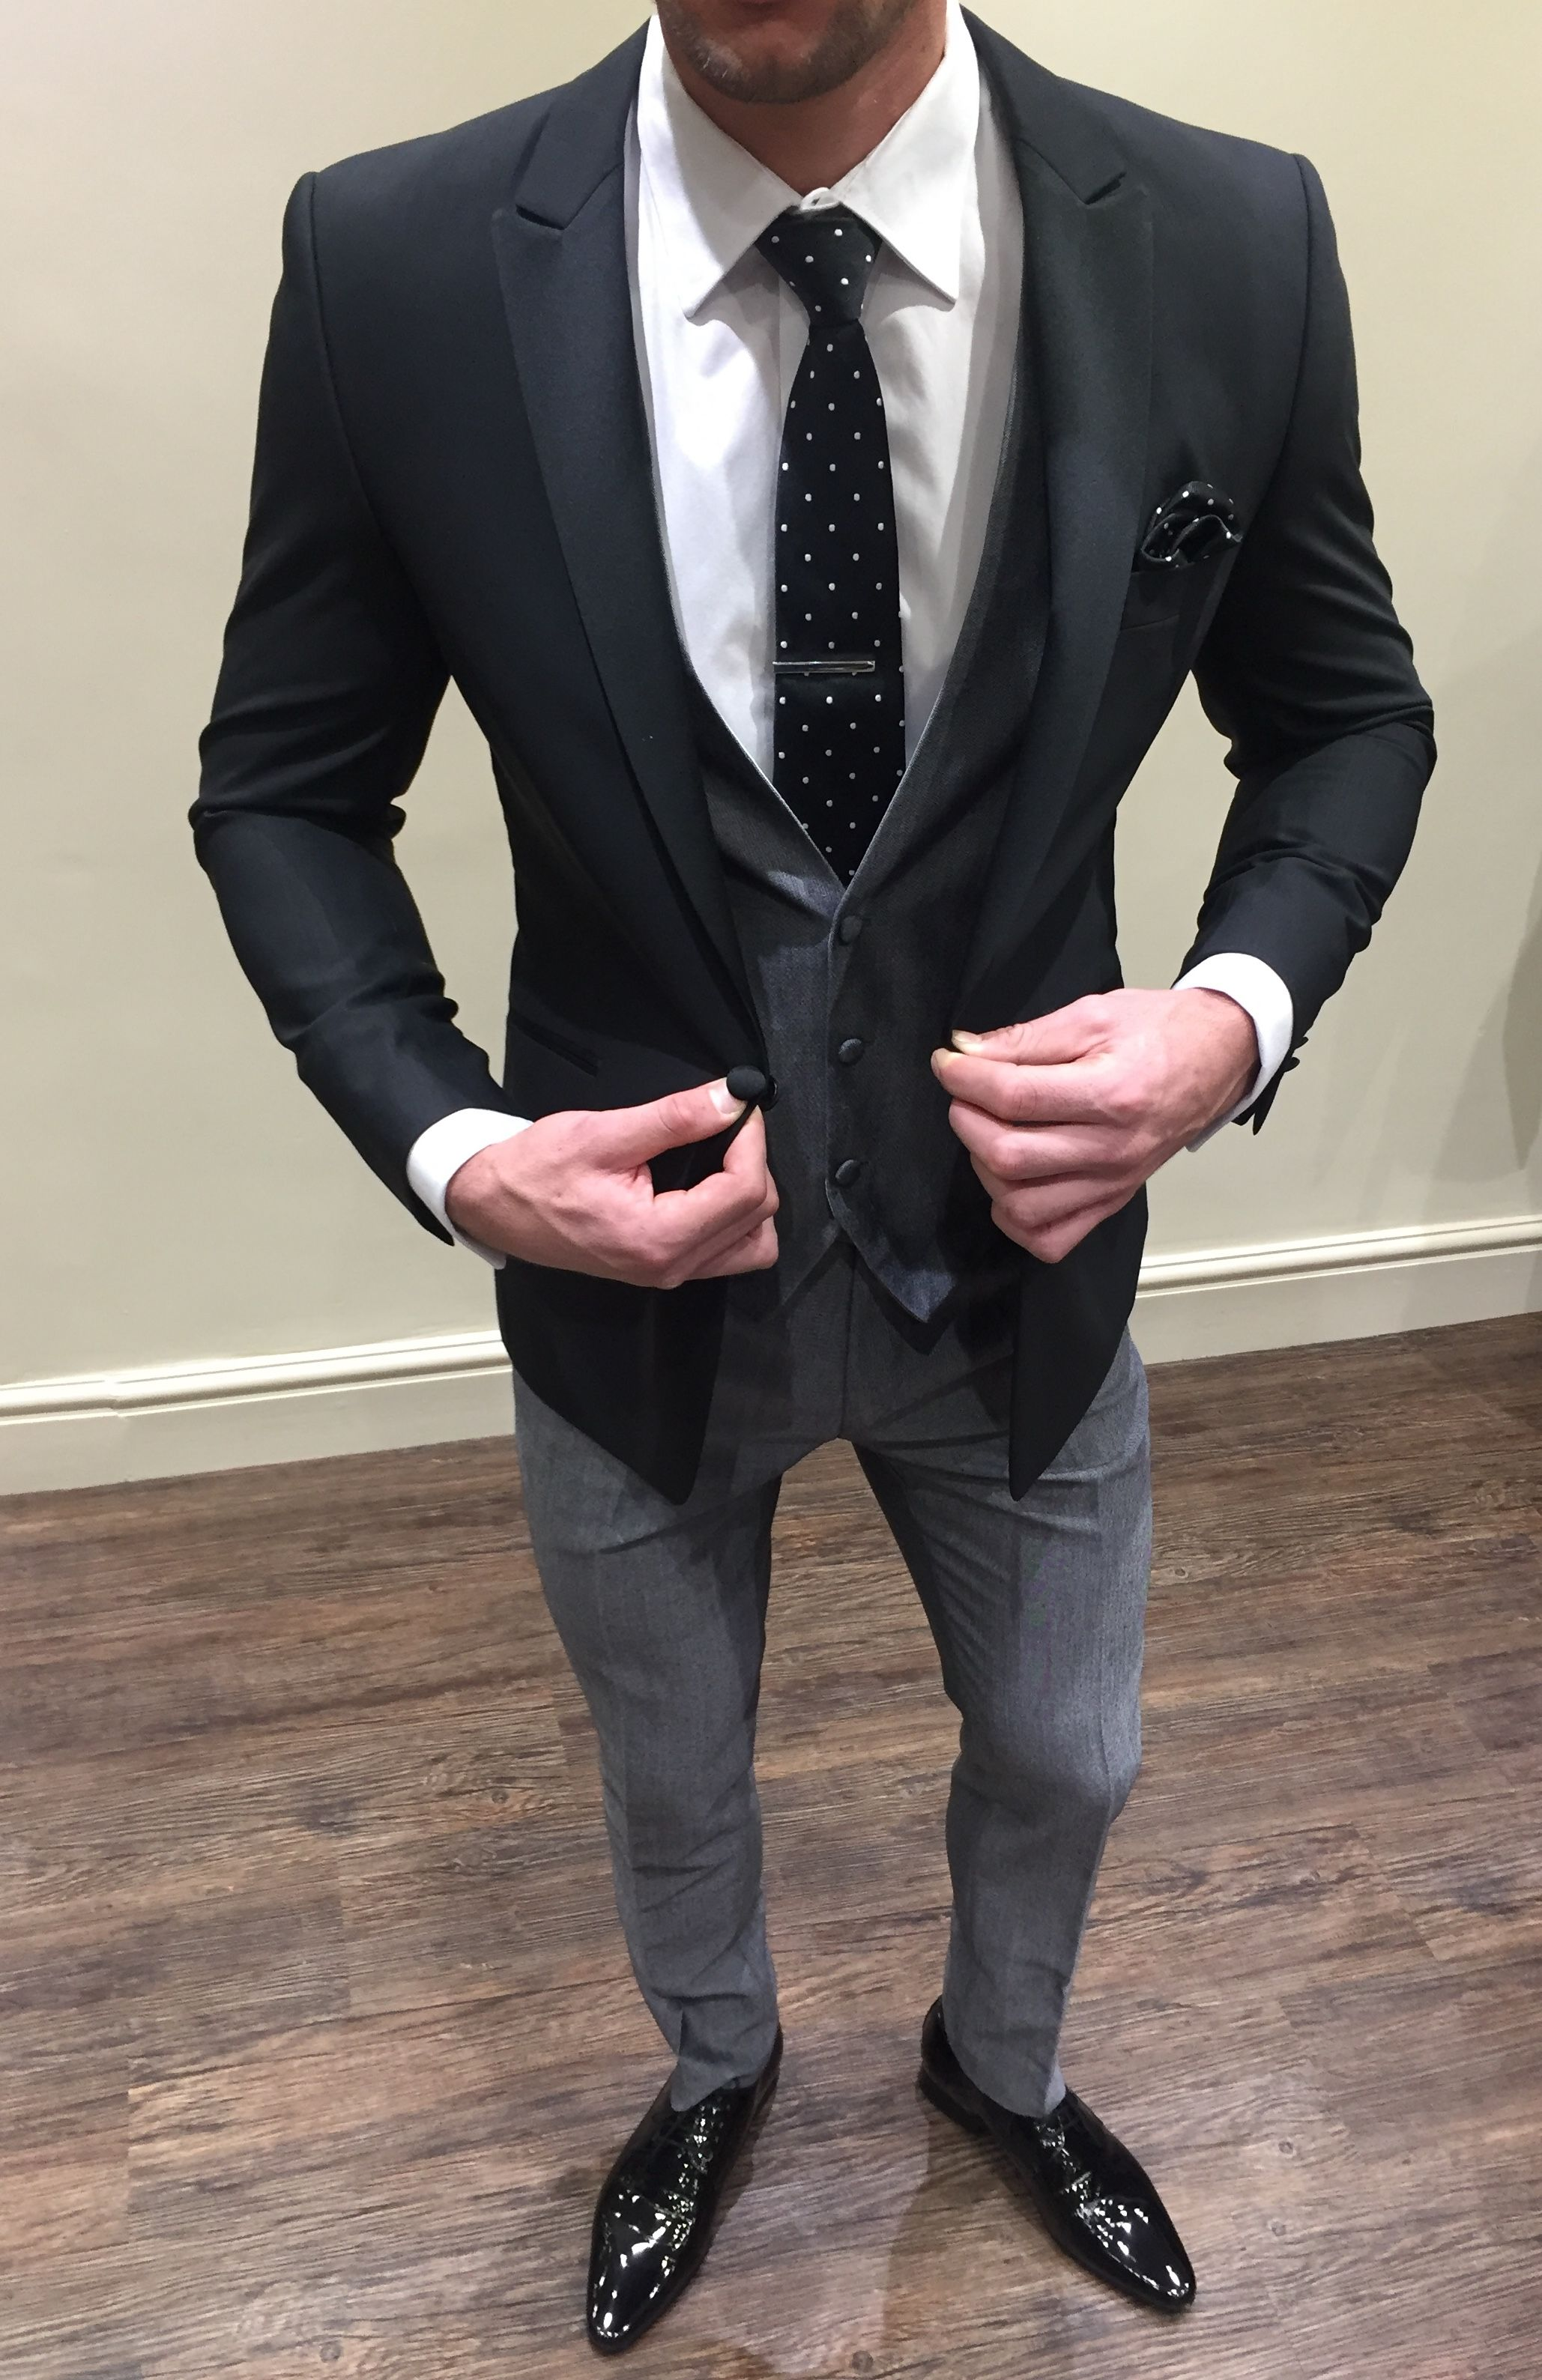 Slim Fit Black Jacket With Contrast Grey Waistcoat And Trousers Groom Wedding Suit Tailored Suit Grey Suit Wedding Black Suit Jacket Wedding Suits Men [ 3177 x 2058 Pixel ]